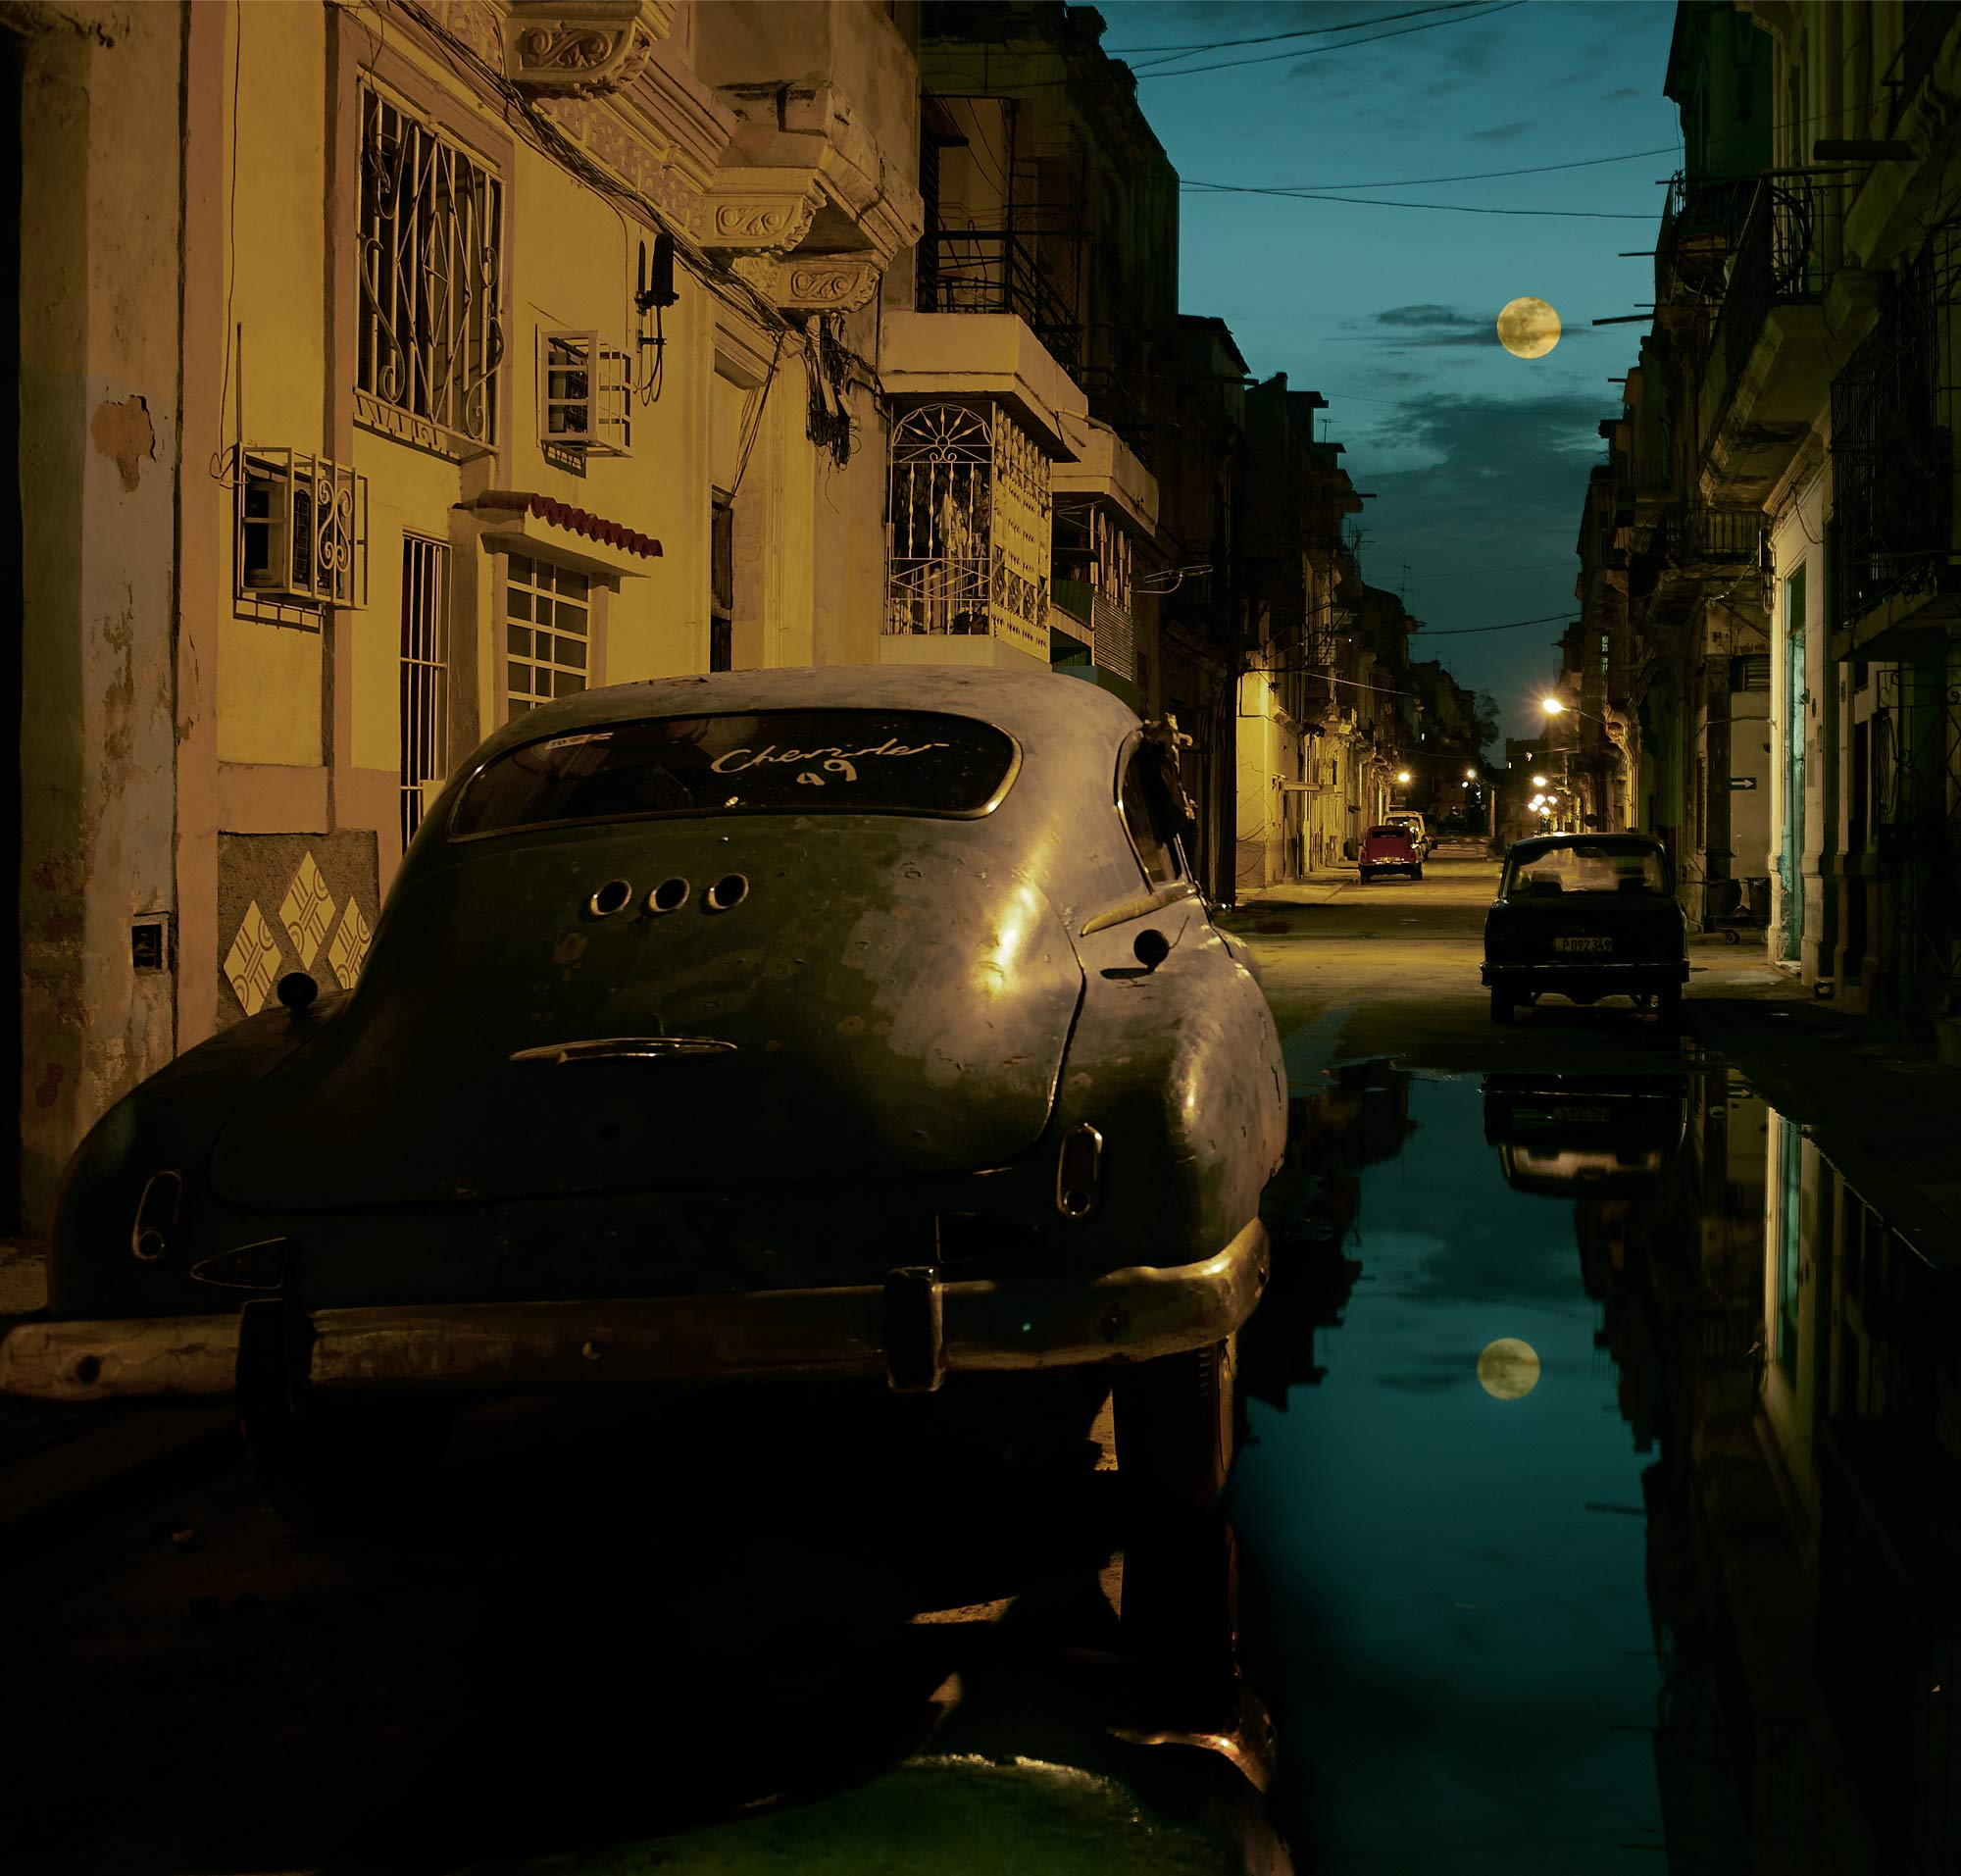 24 hours in Havana, Cuba.  I flew over and back with my friend who is a senior pilot for Air France.  I spent more time in the plane than on the ground.